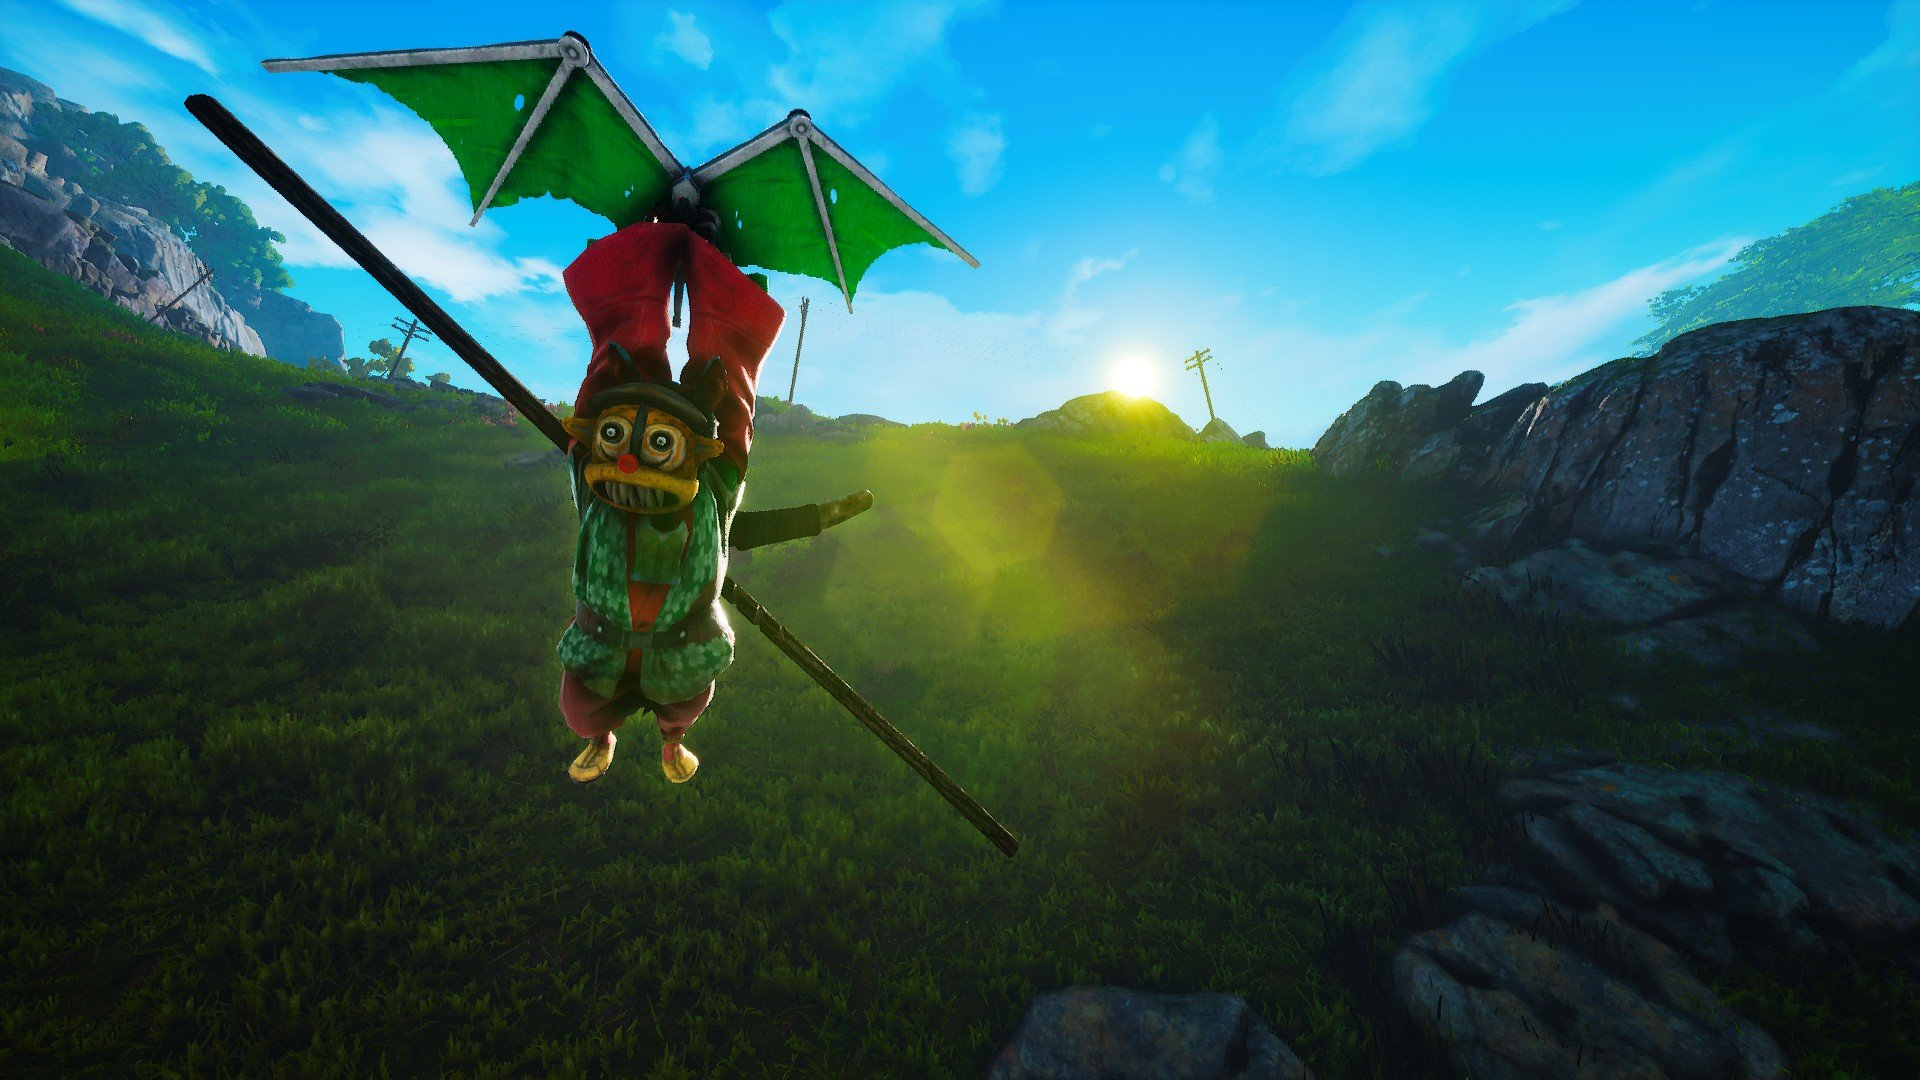 Biomutant - How to Fly Guide